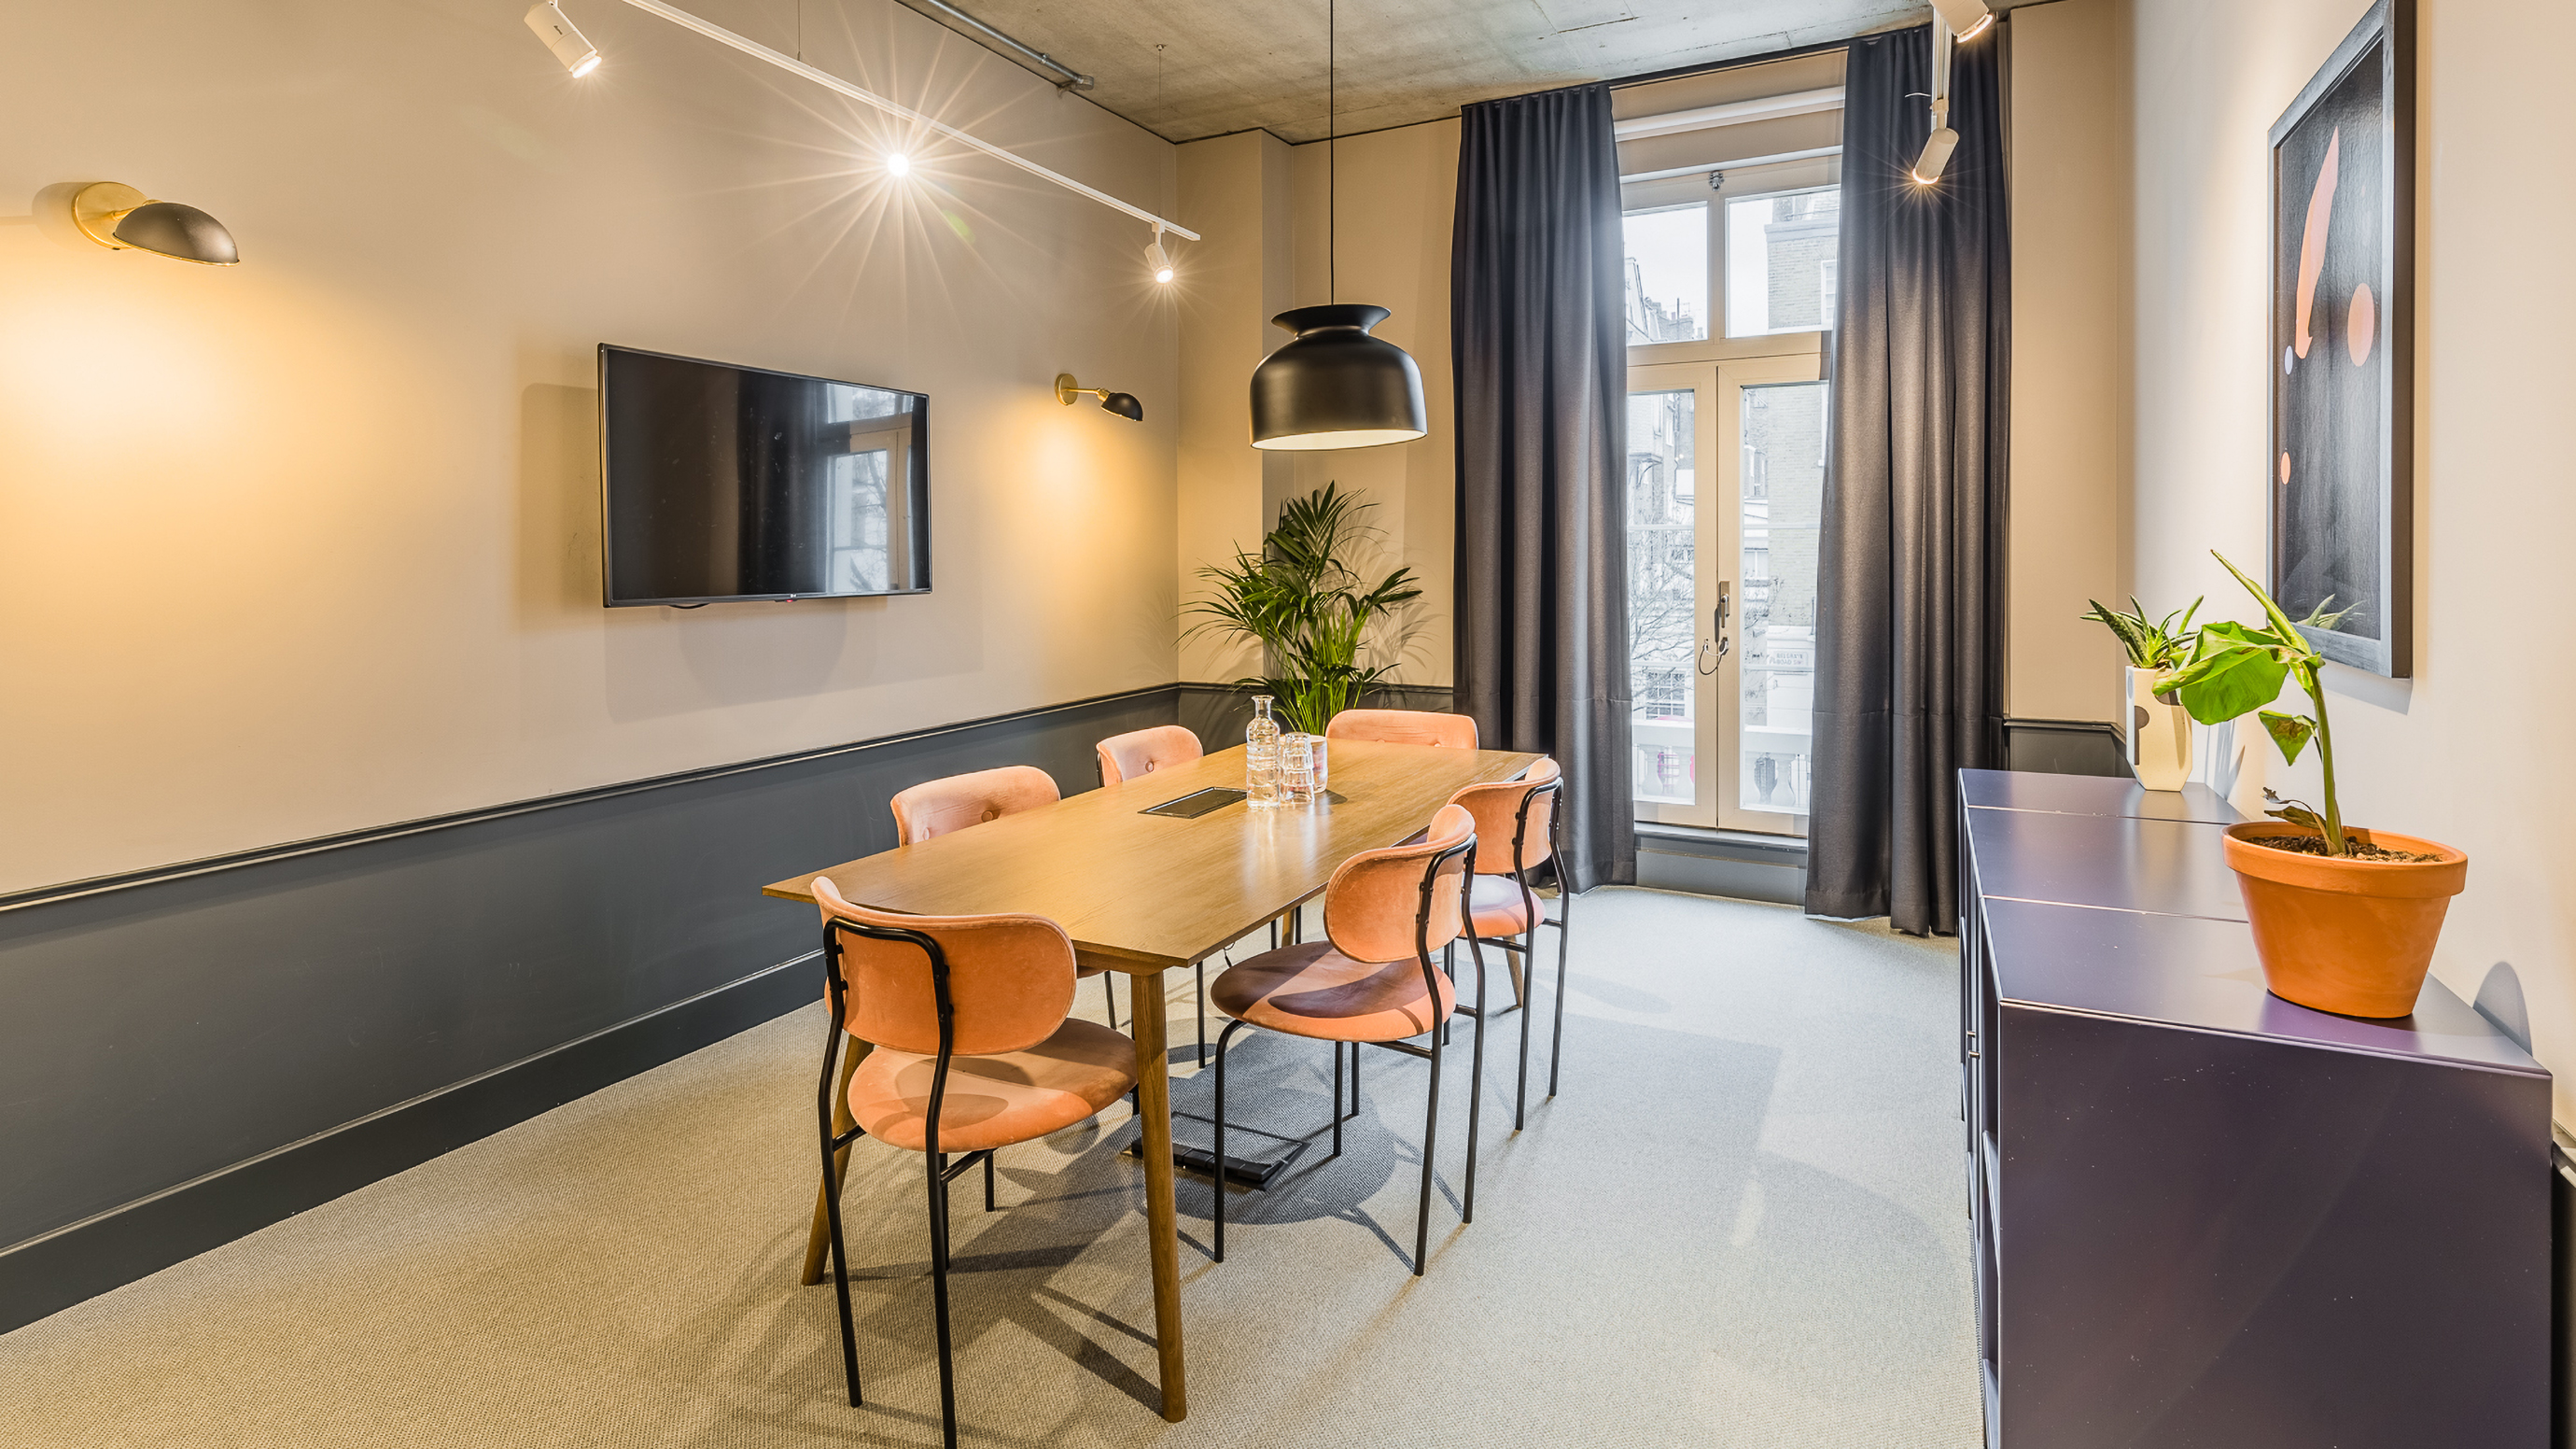 Small meeting room with wooden table and orange chairs and grey walls at TOG building Thomas House London